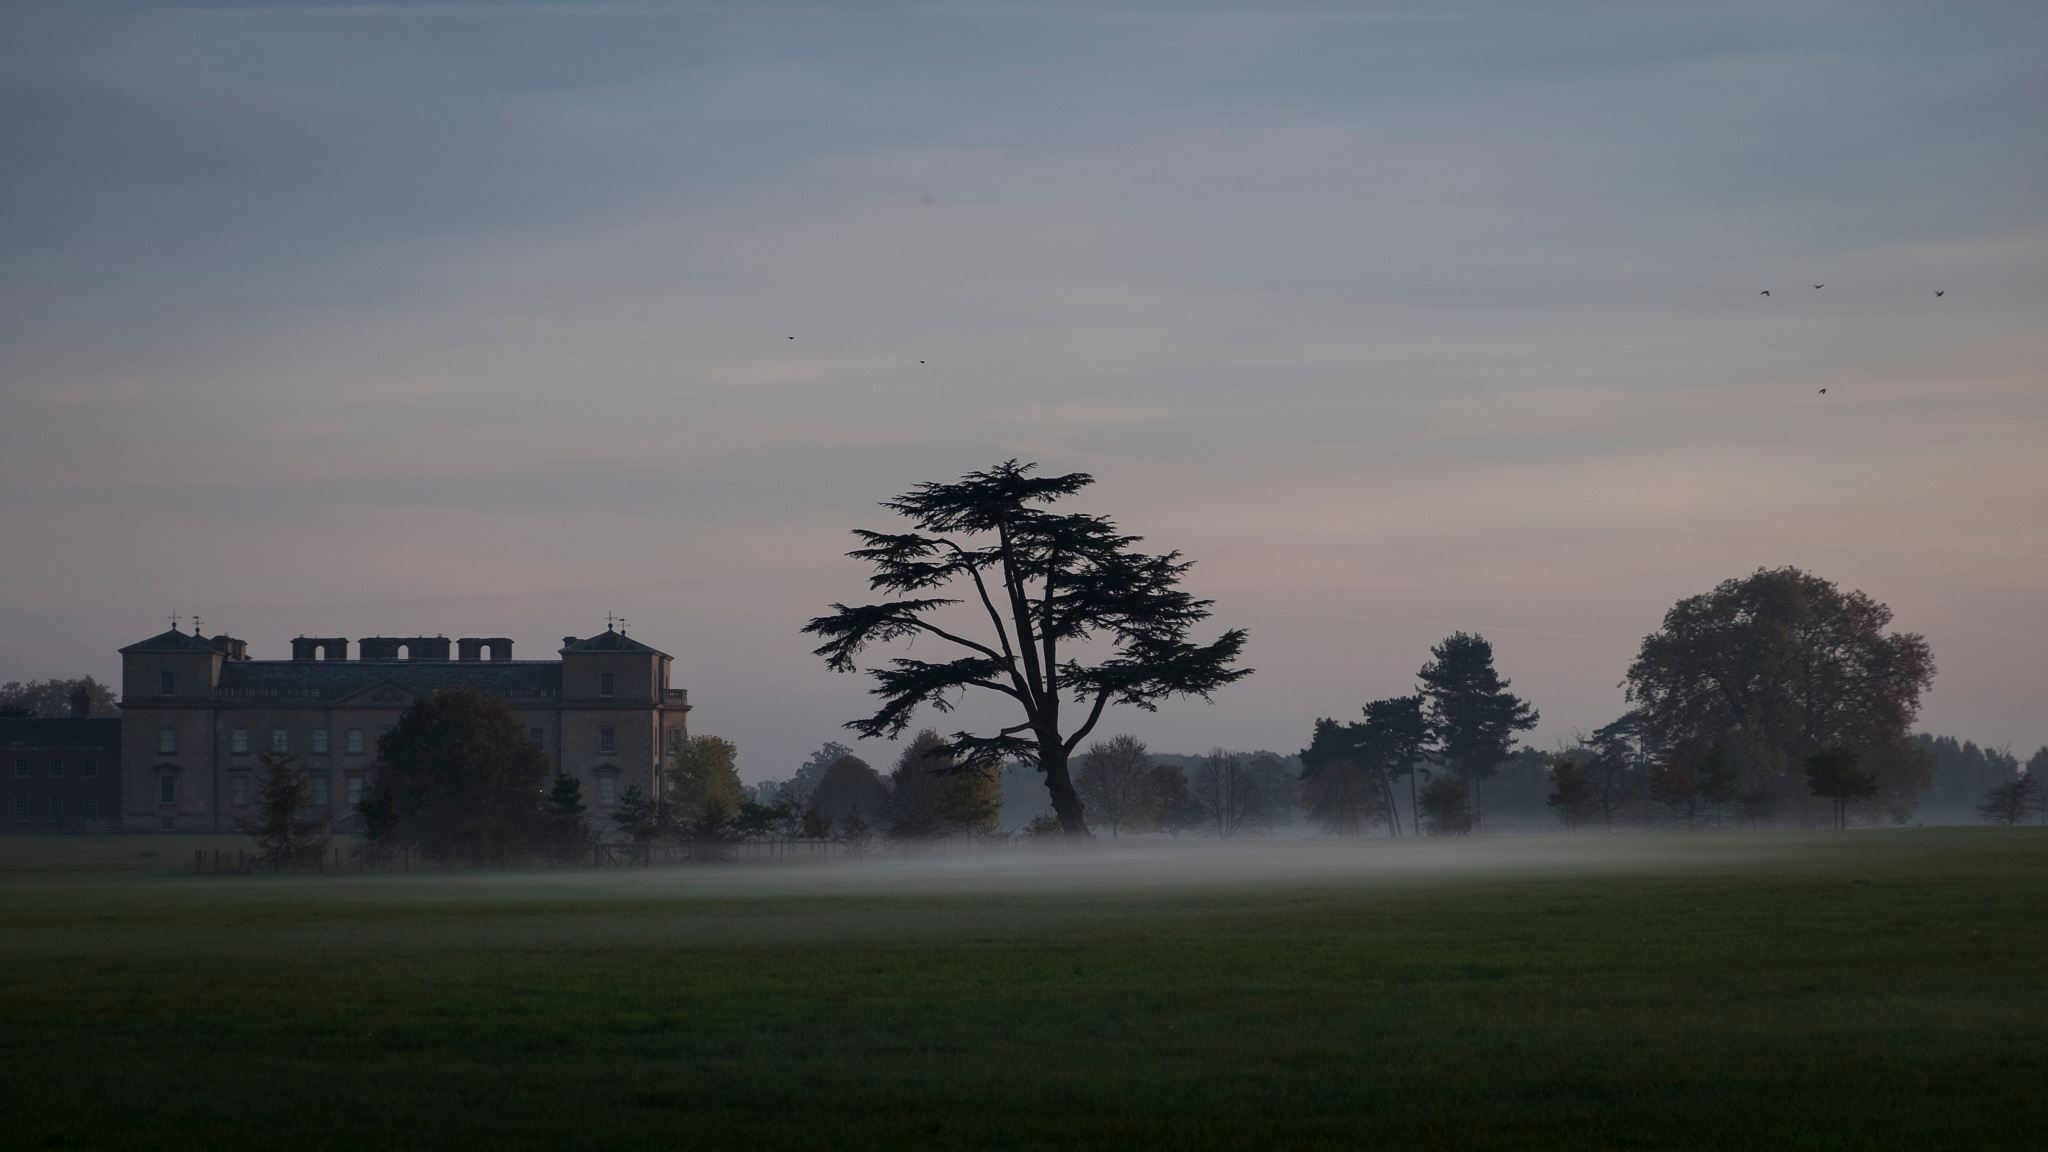 Mist forming at Croome by kevPugh